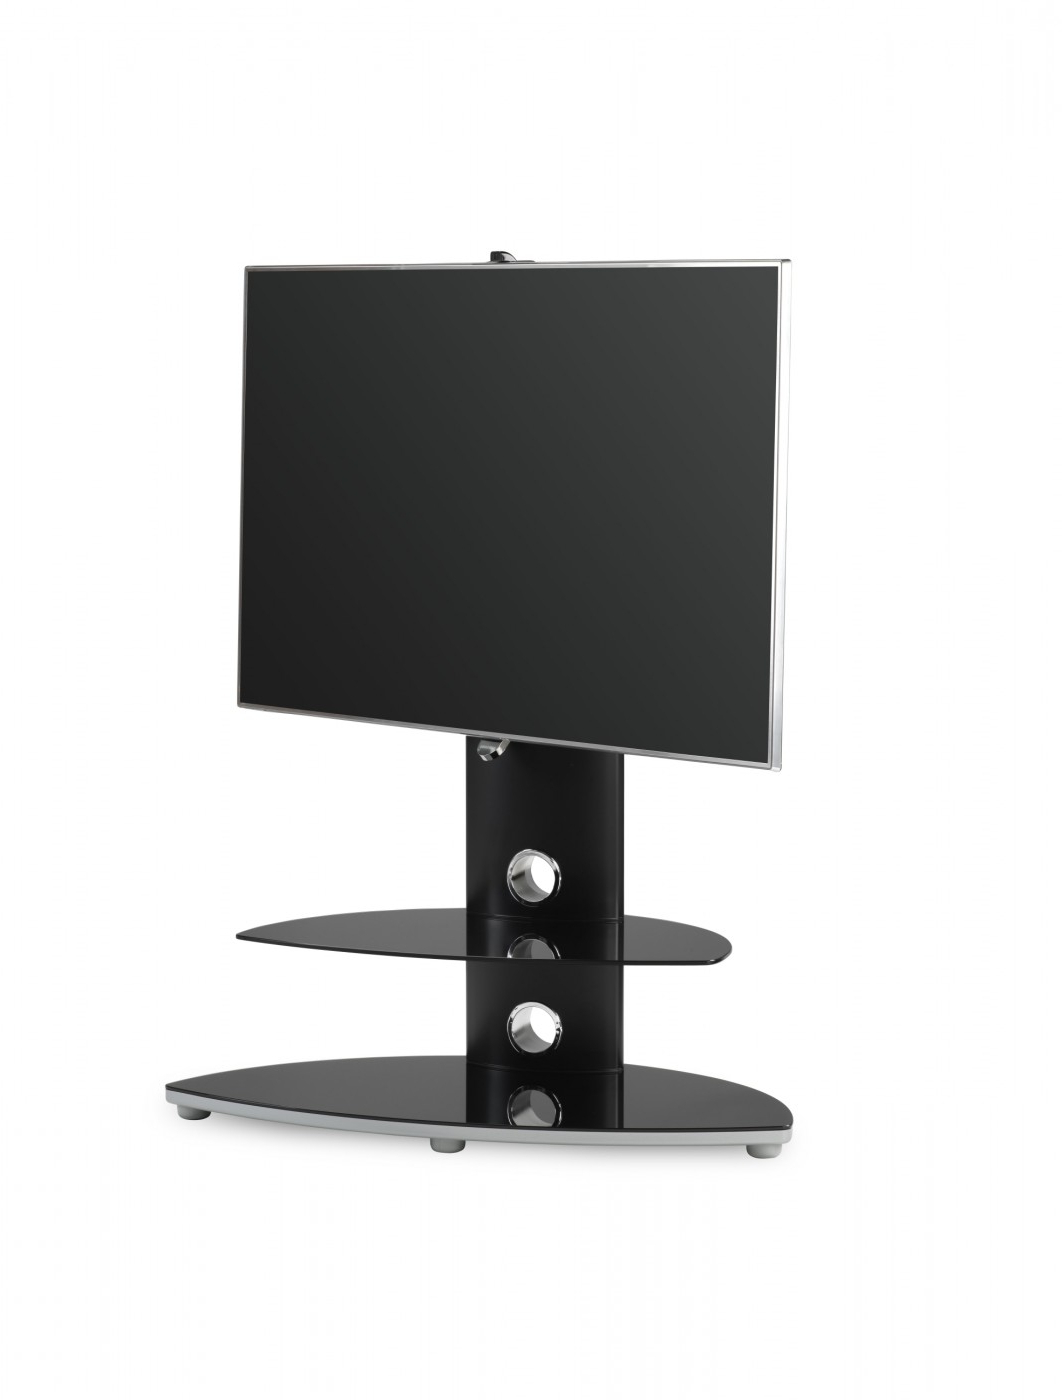 Alphason Osmb800/2 S Osmium Tv Stand | 121 Tv Mounts Within 57'' Tv Stands With Open Glass Shelves Gray & Black Finsh (View 16 of 20)